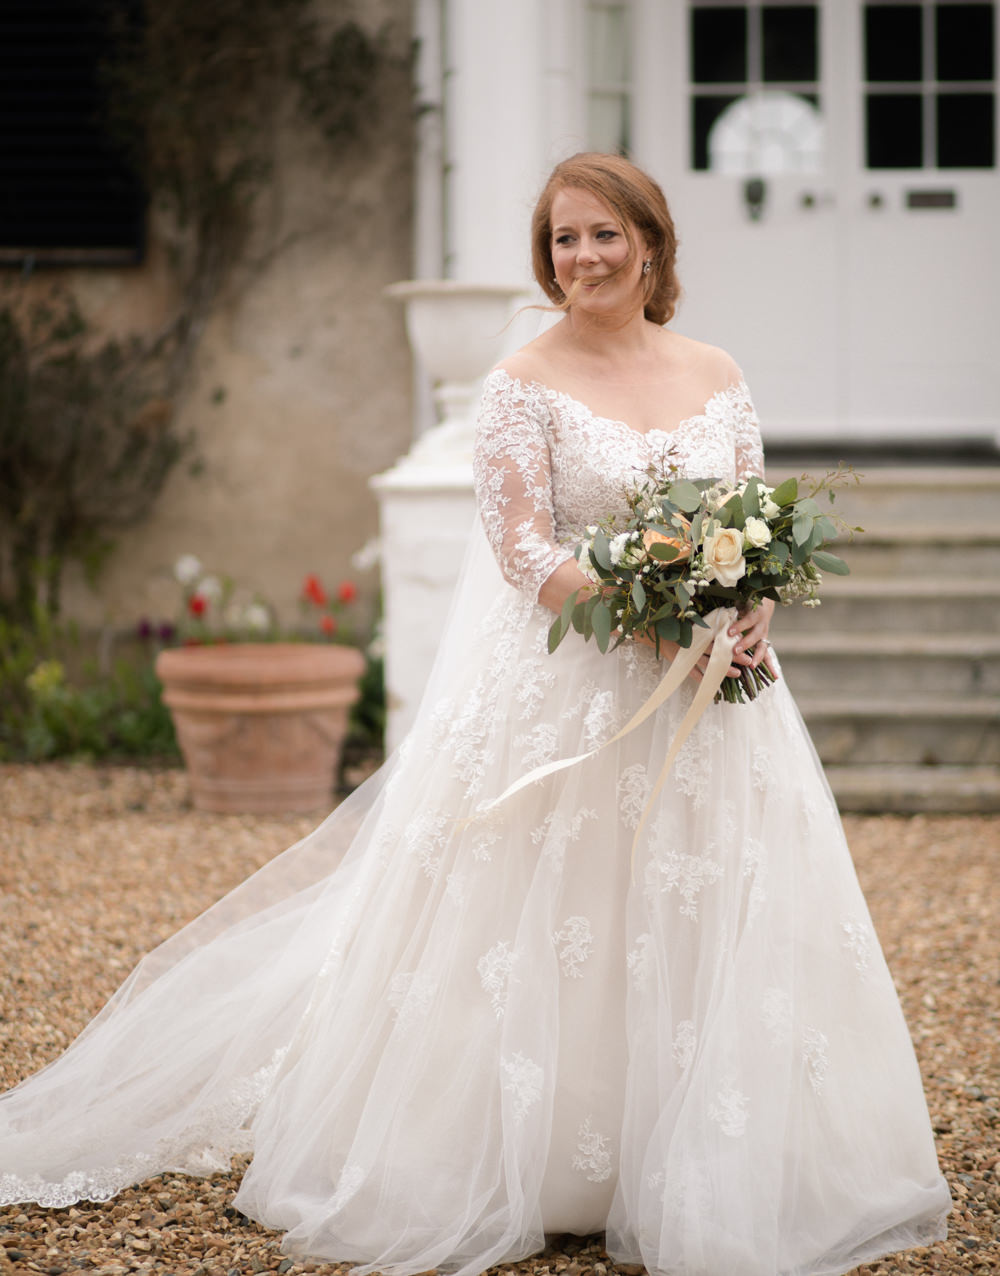 Bride Bridal Lace Bardot Button Back A Line Dress Gown Long Up Do Watercolour Wedding Kerry Ann Duffy Photography